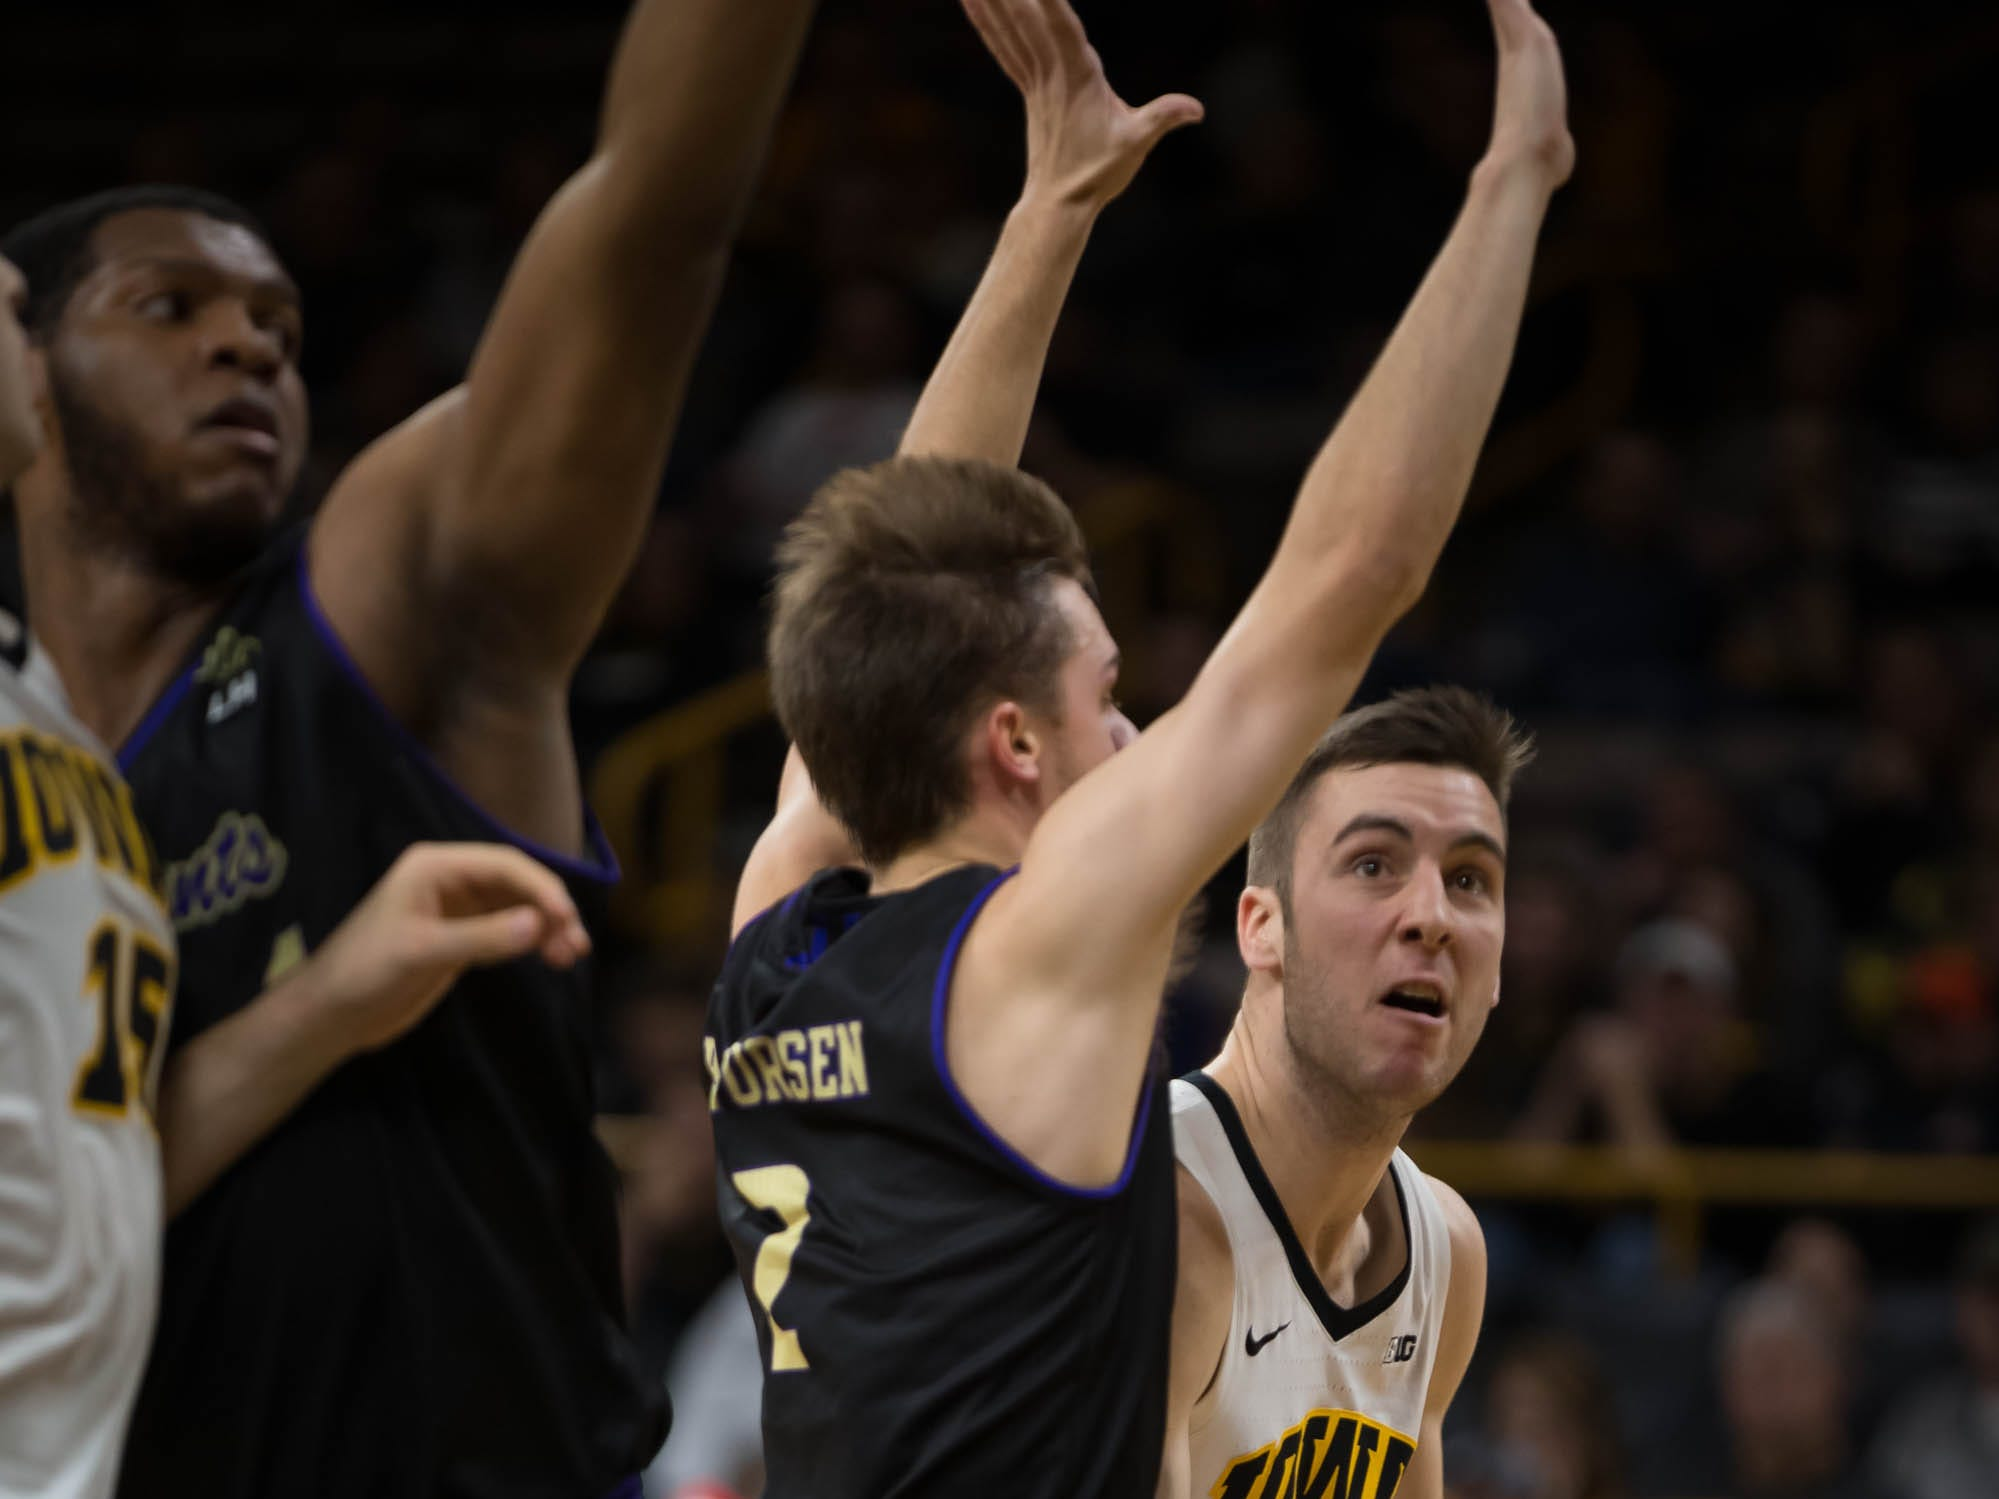 Iowa redshirt freshman guard Connor McCaffery (30) drives against Western Carolina sophomore guard Matt Halvorsen (2) in the first half at Carver Hawkeye Arena in Iowa City on Tuesday, Dec. 18, 2018.